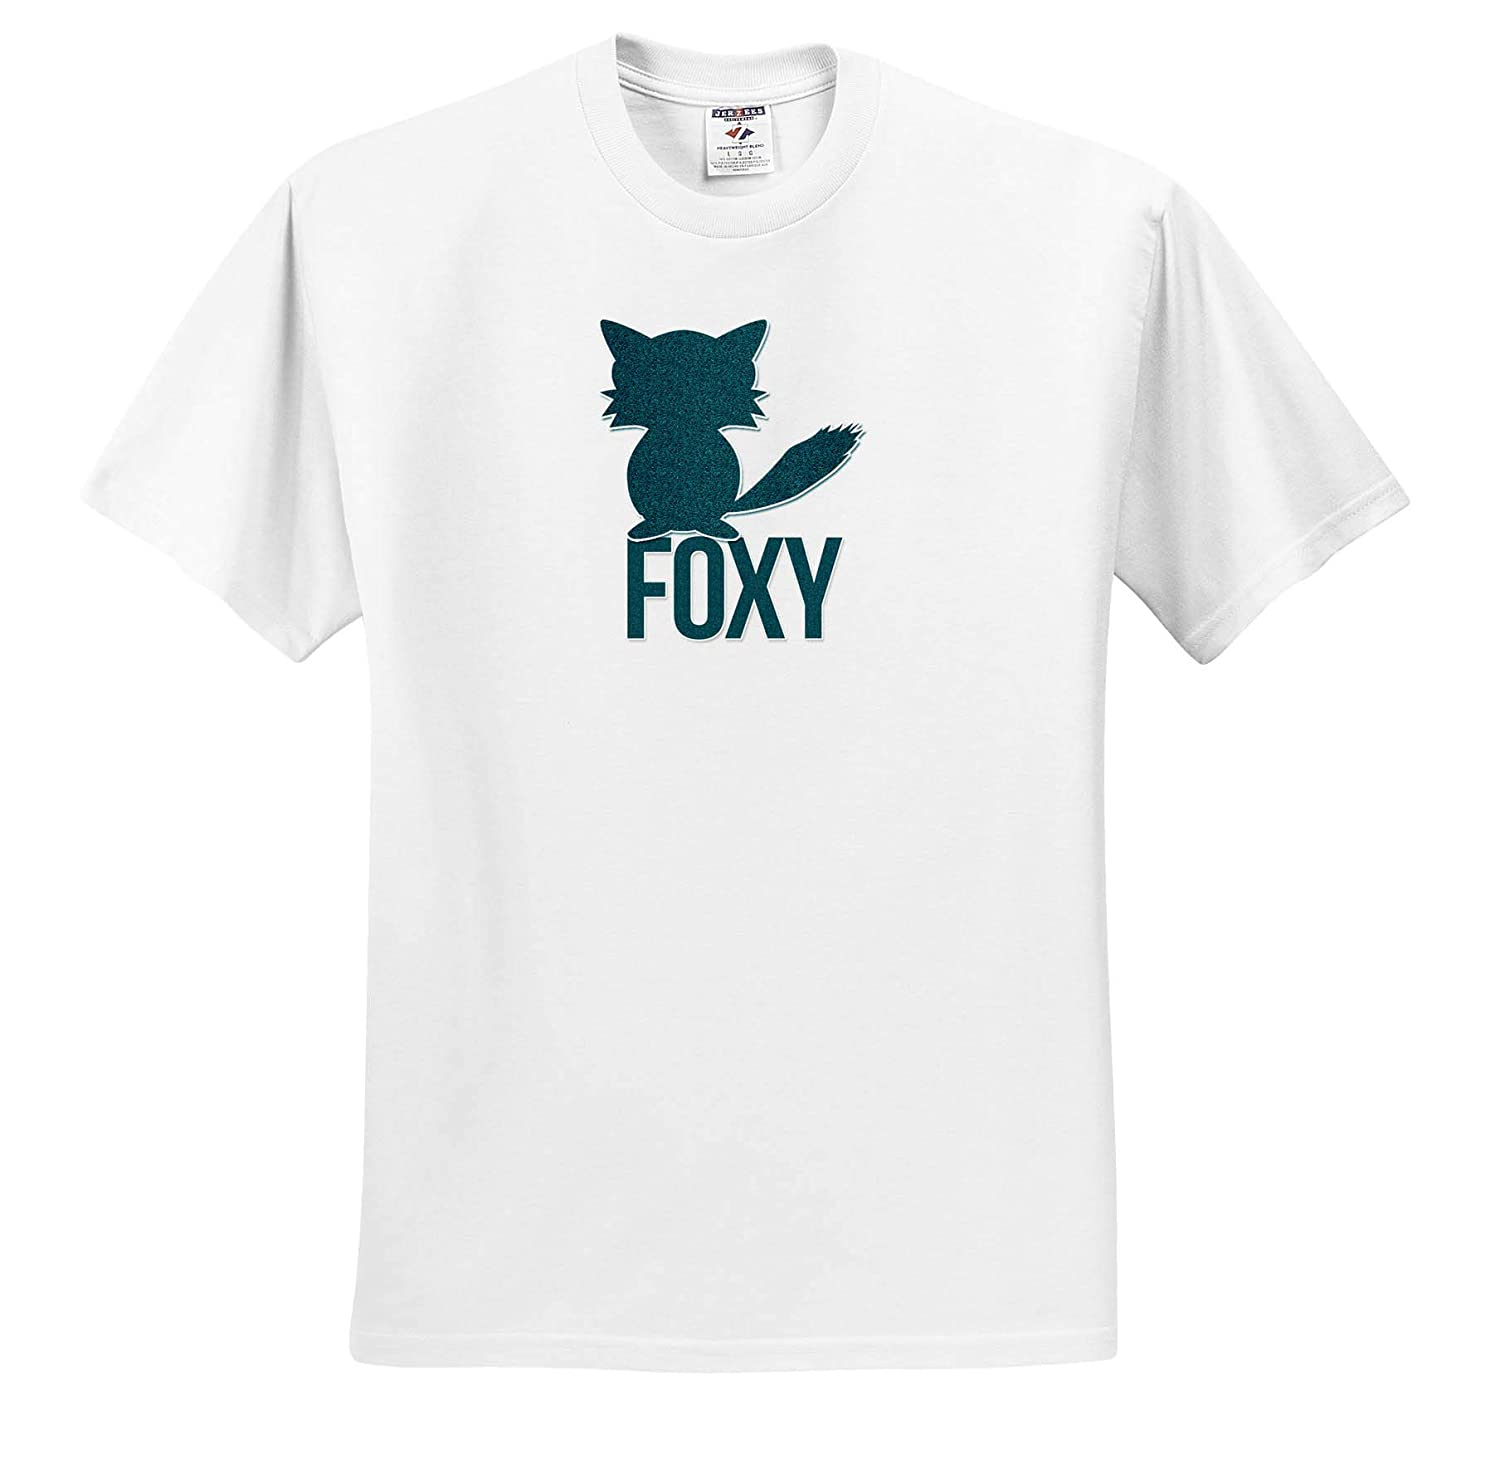 ts/_310178 Foxy Funny Green Fox Play on Words for Her Adult T-Shirt XL 3dRose Doreen Erhardt Wildlife